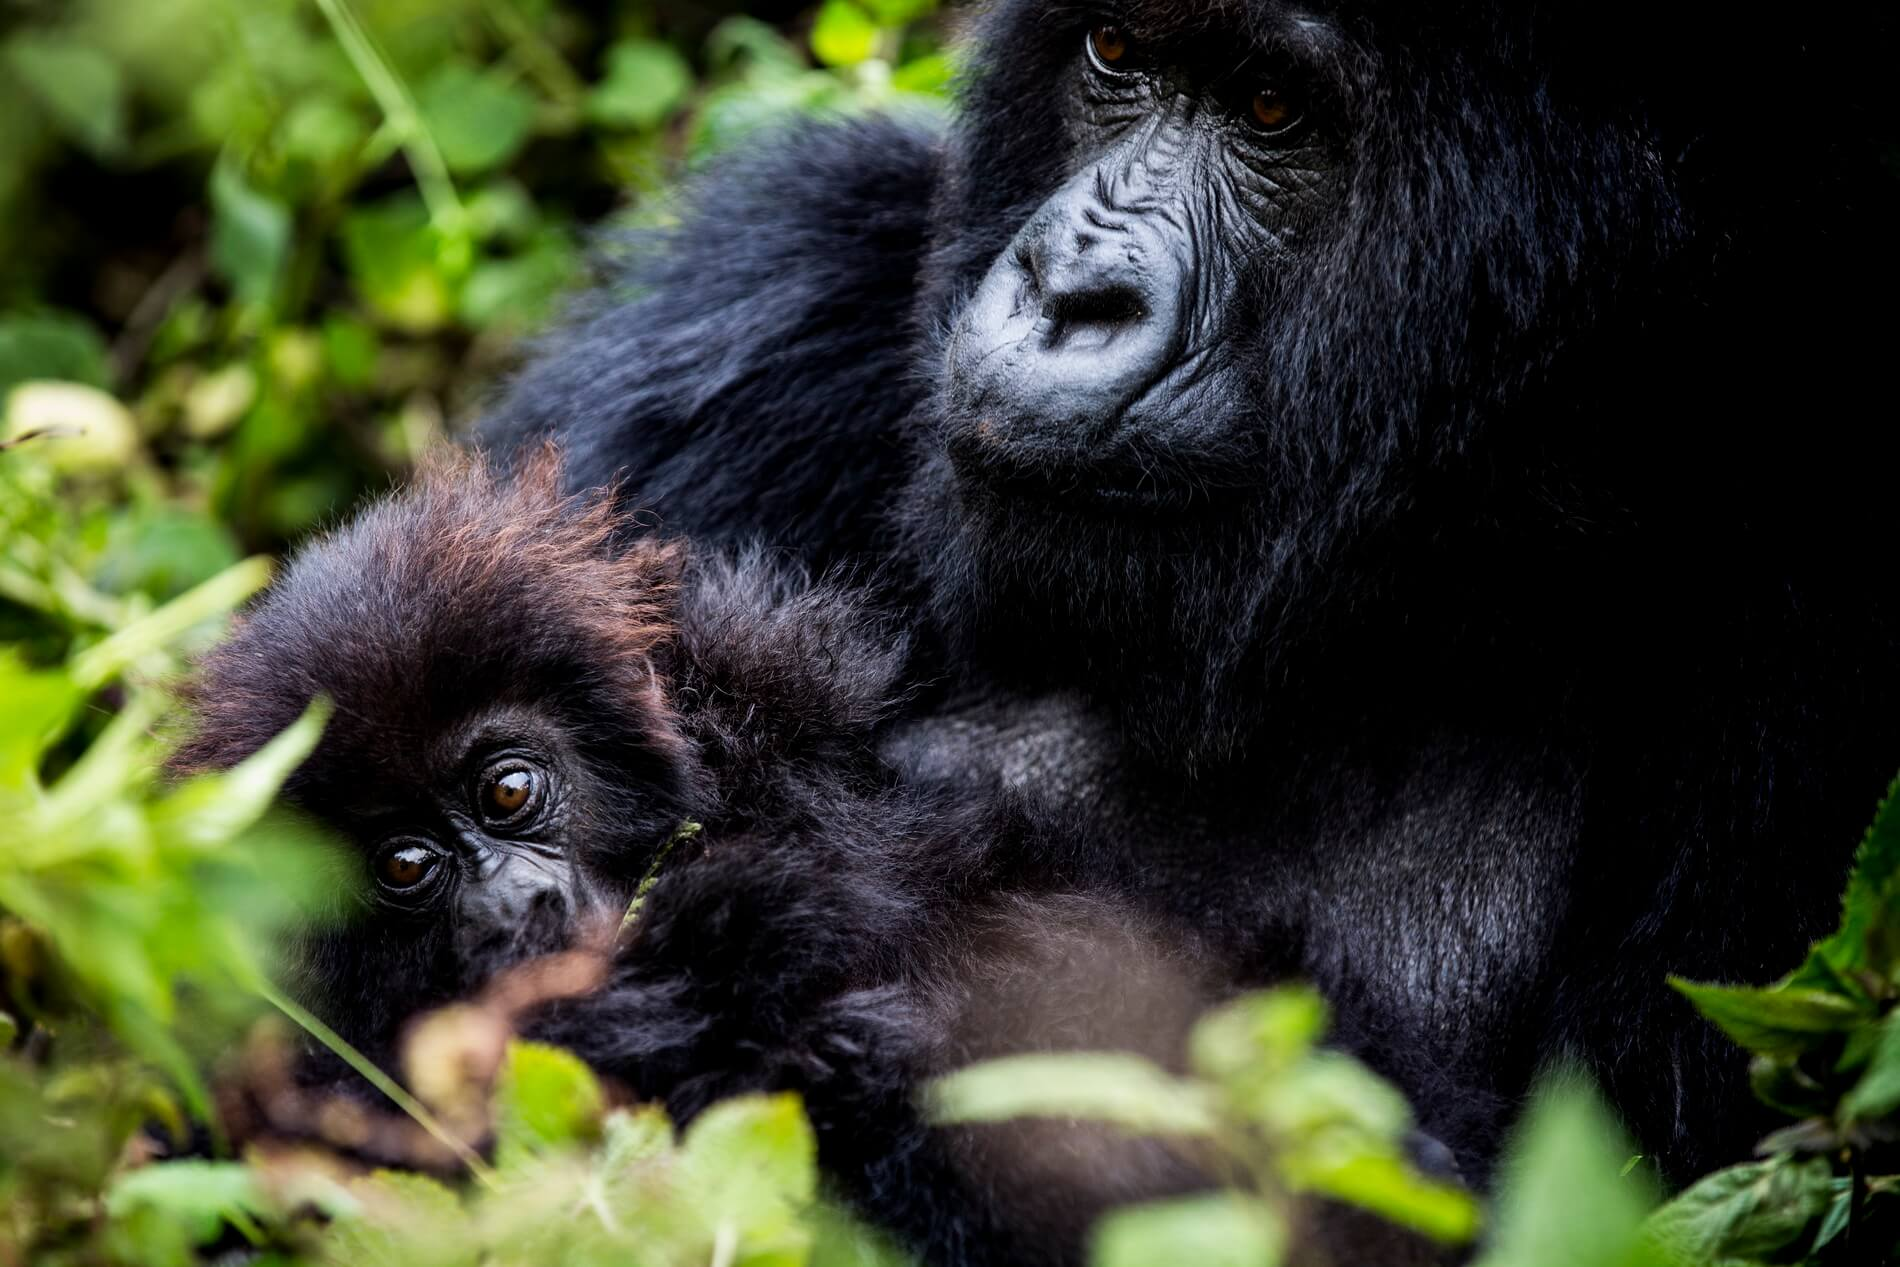 Gorilla Mutter und Kind beim Gorilla Trekking Bisate Wilderness Lodge in Ruanda